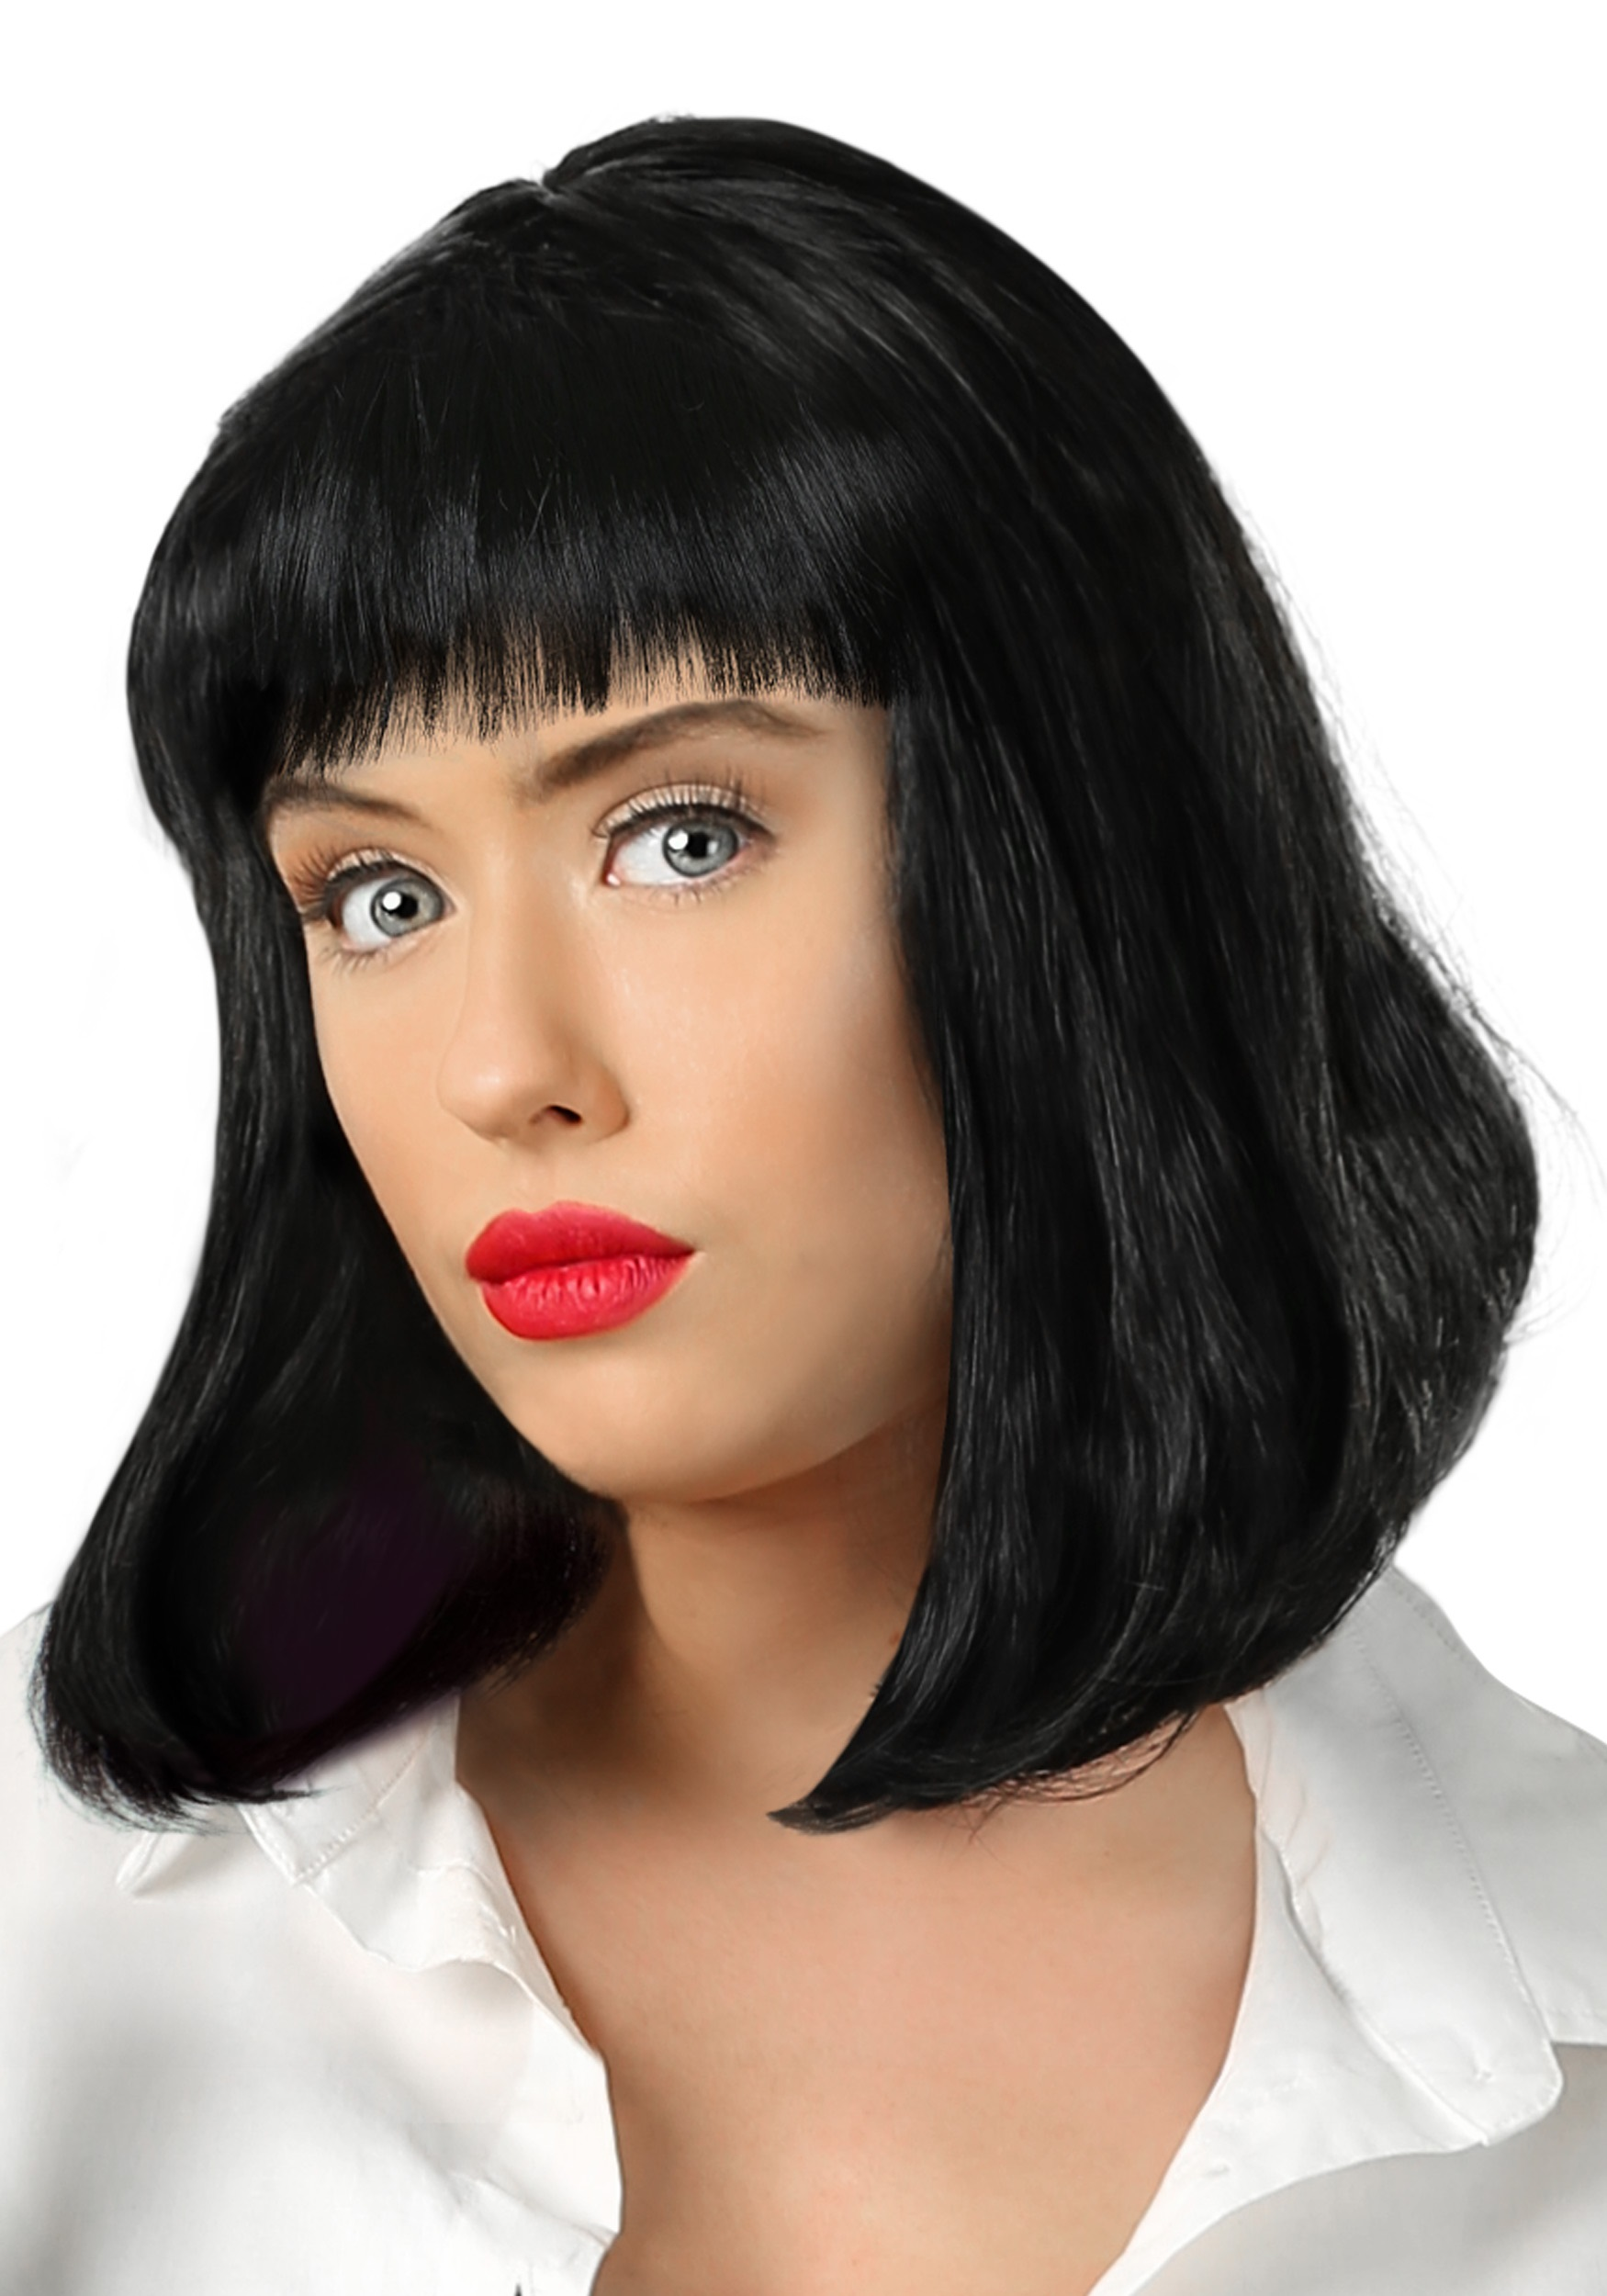 Pulp Fiction Mia Wallace Wig for Adults